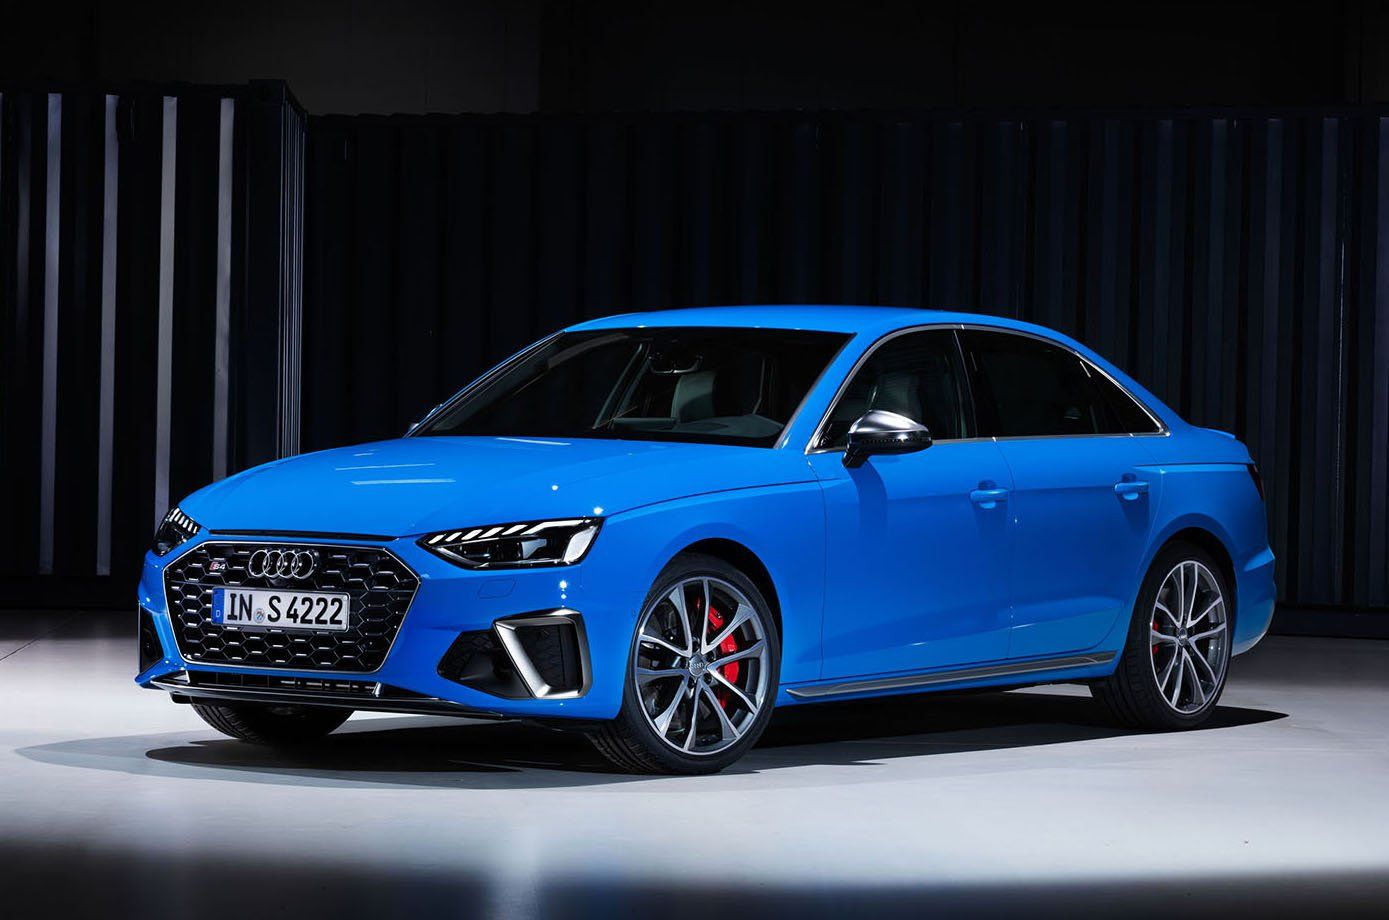 2020 Audi Q4 Unveiled! Release Date And Price >> Audi A4 2020 Release Date 2020 Audi A4 Revealed Price Specs